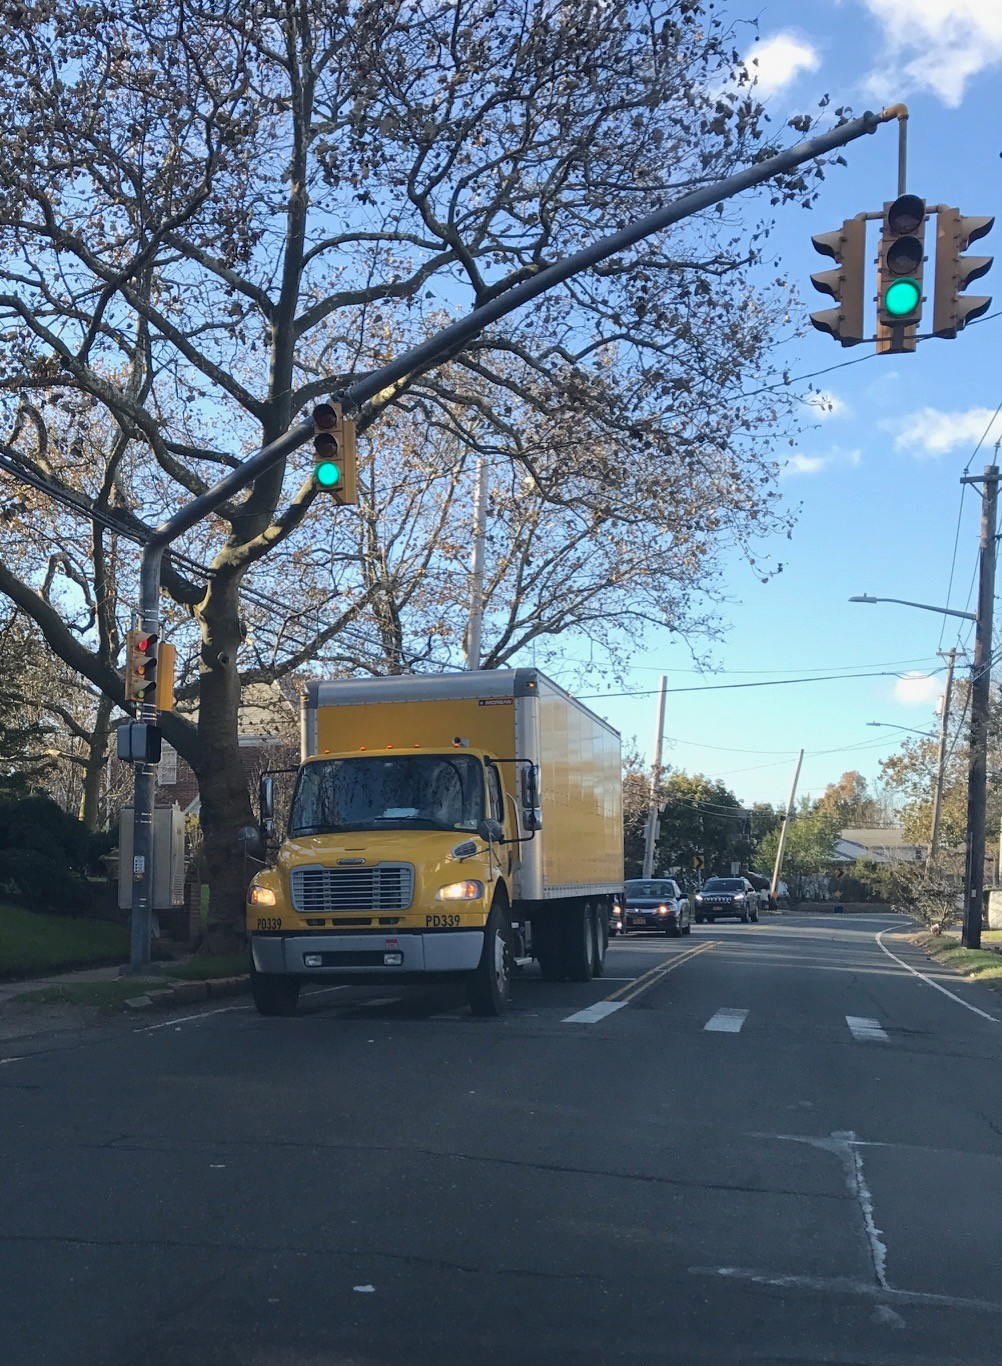 Trucks often use West Broadway as a shortcut through the Five Towns.